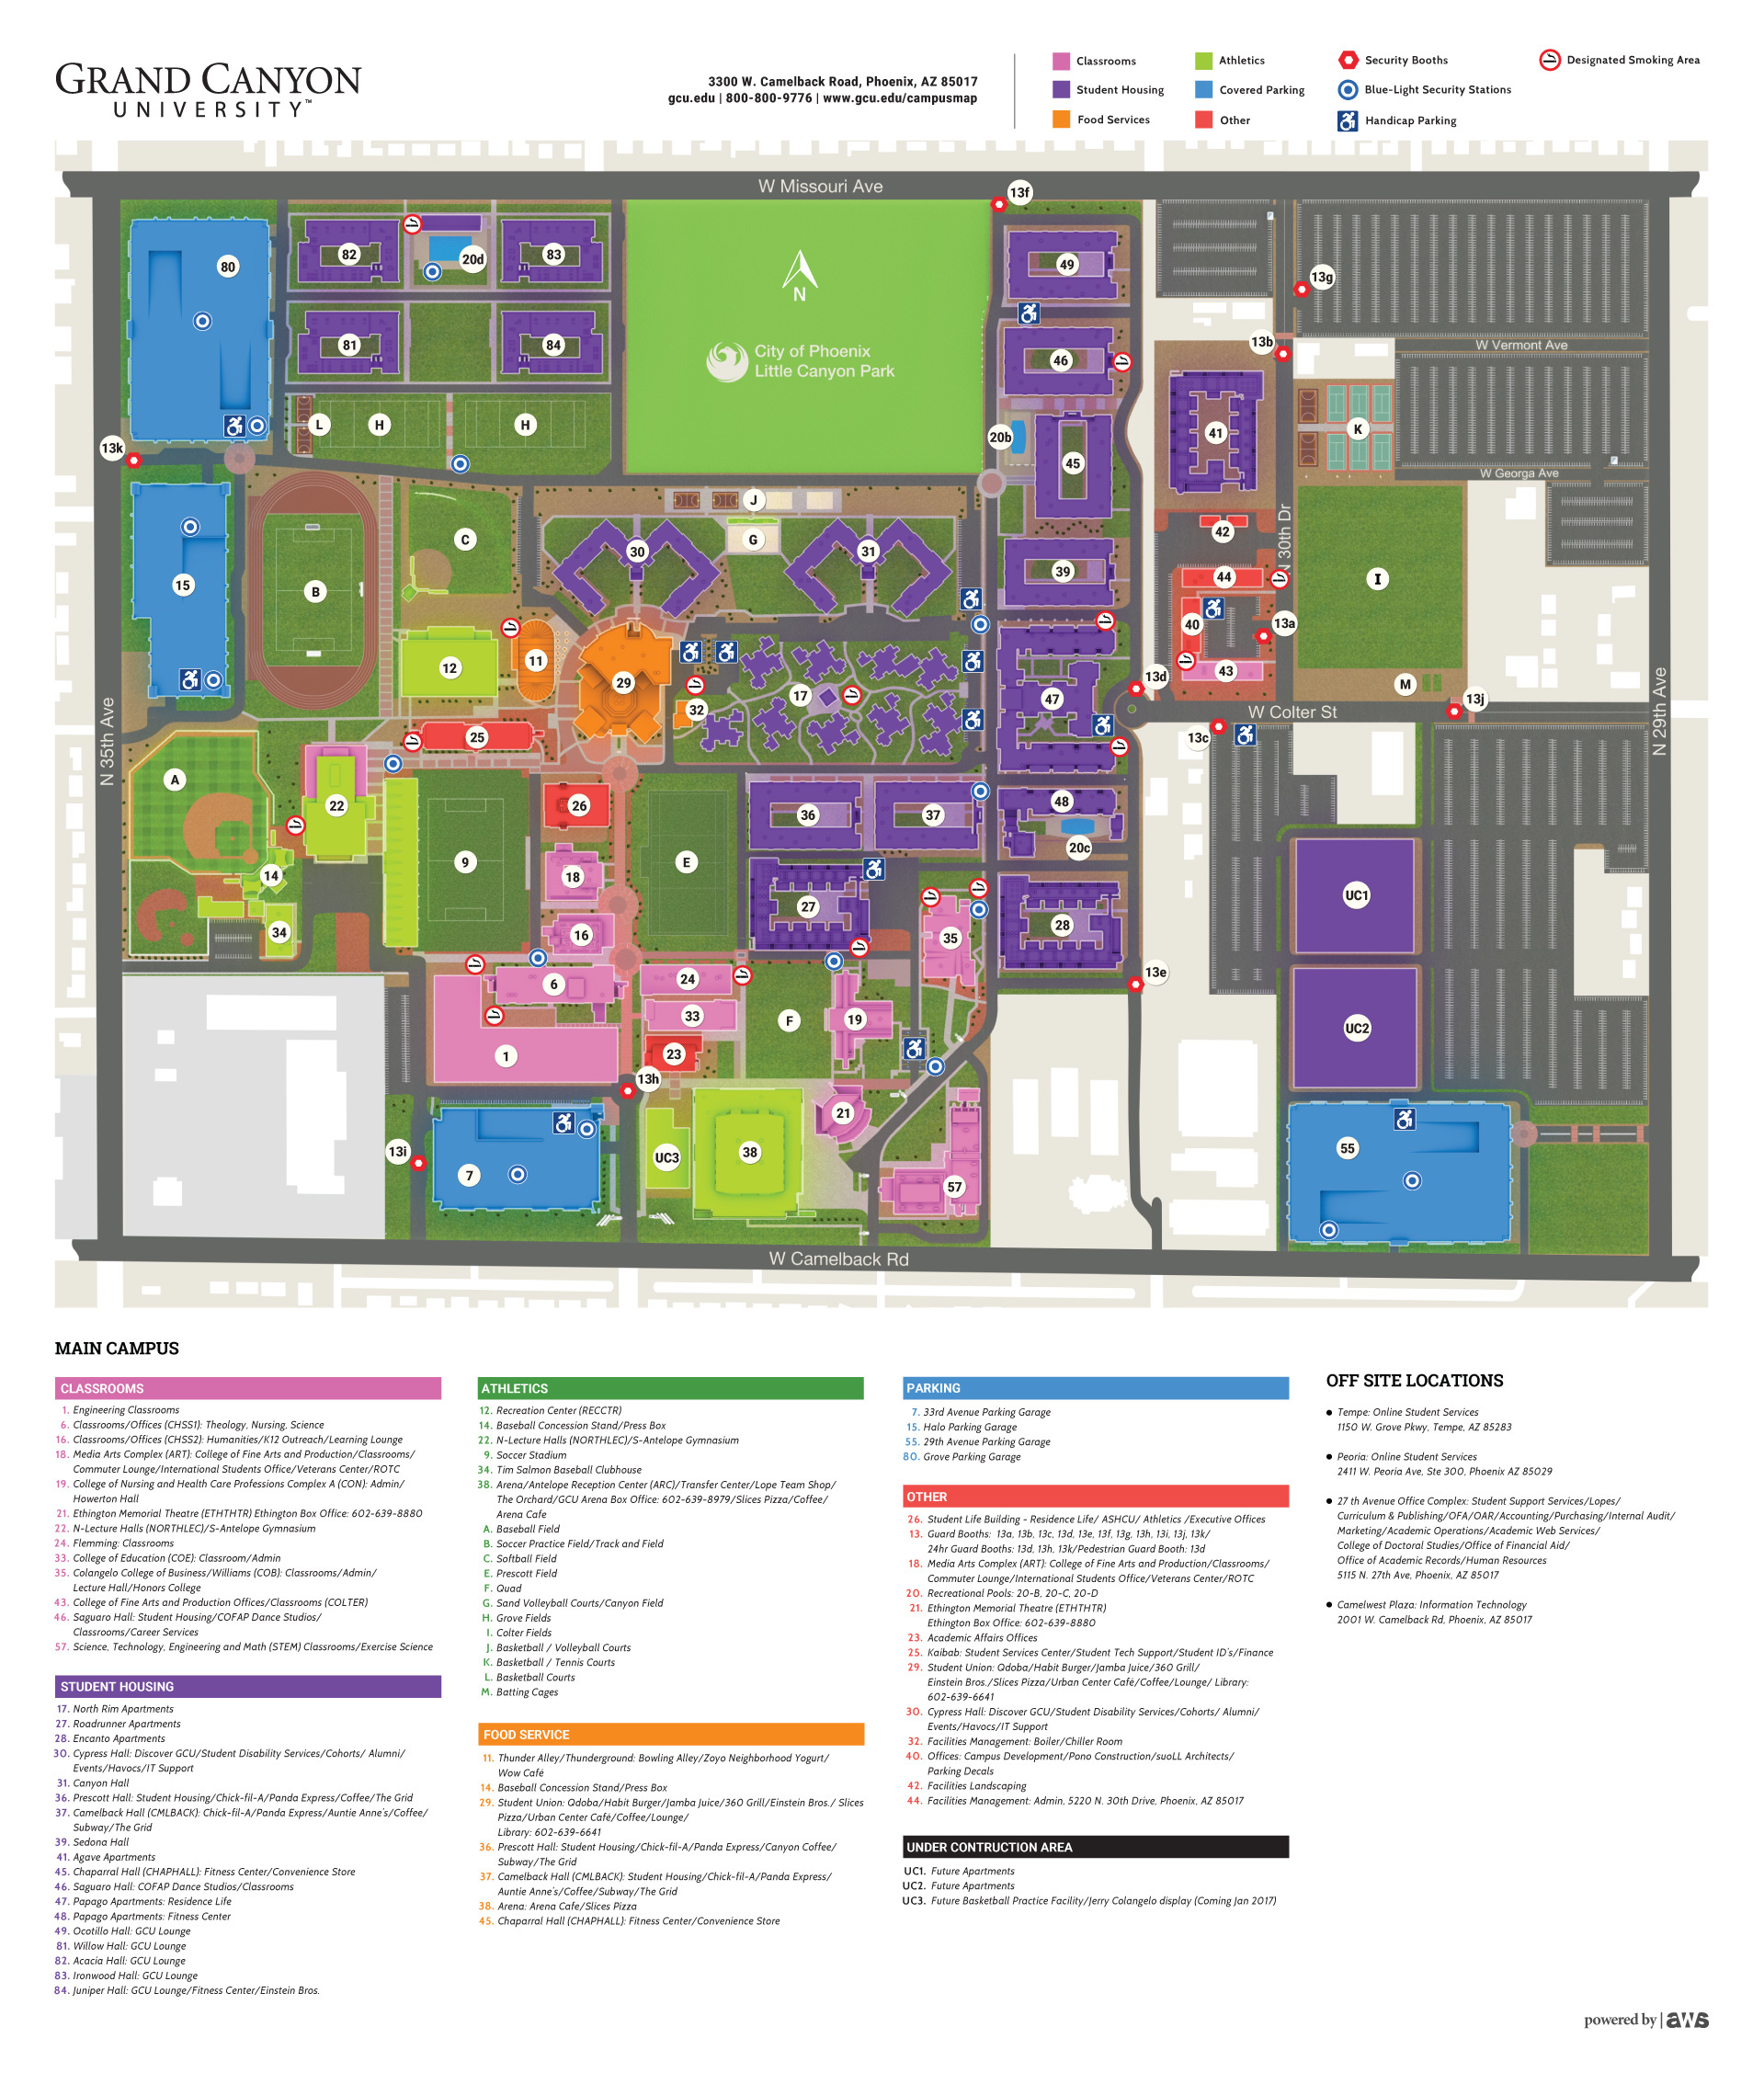 . gcu interactive campus map on behance